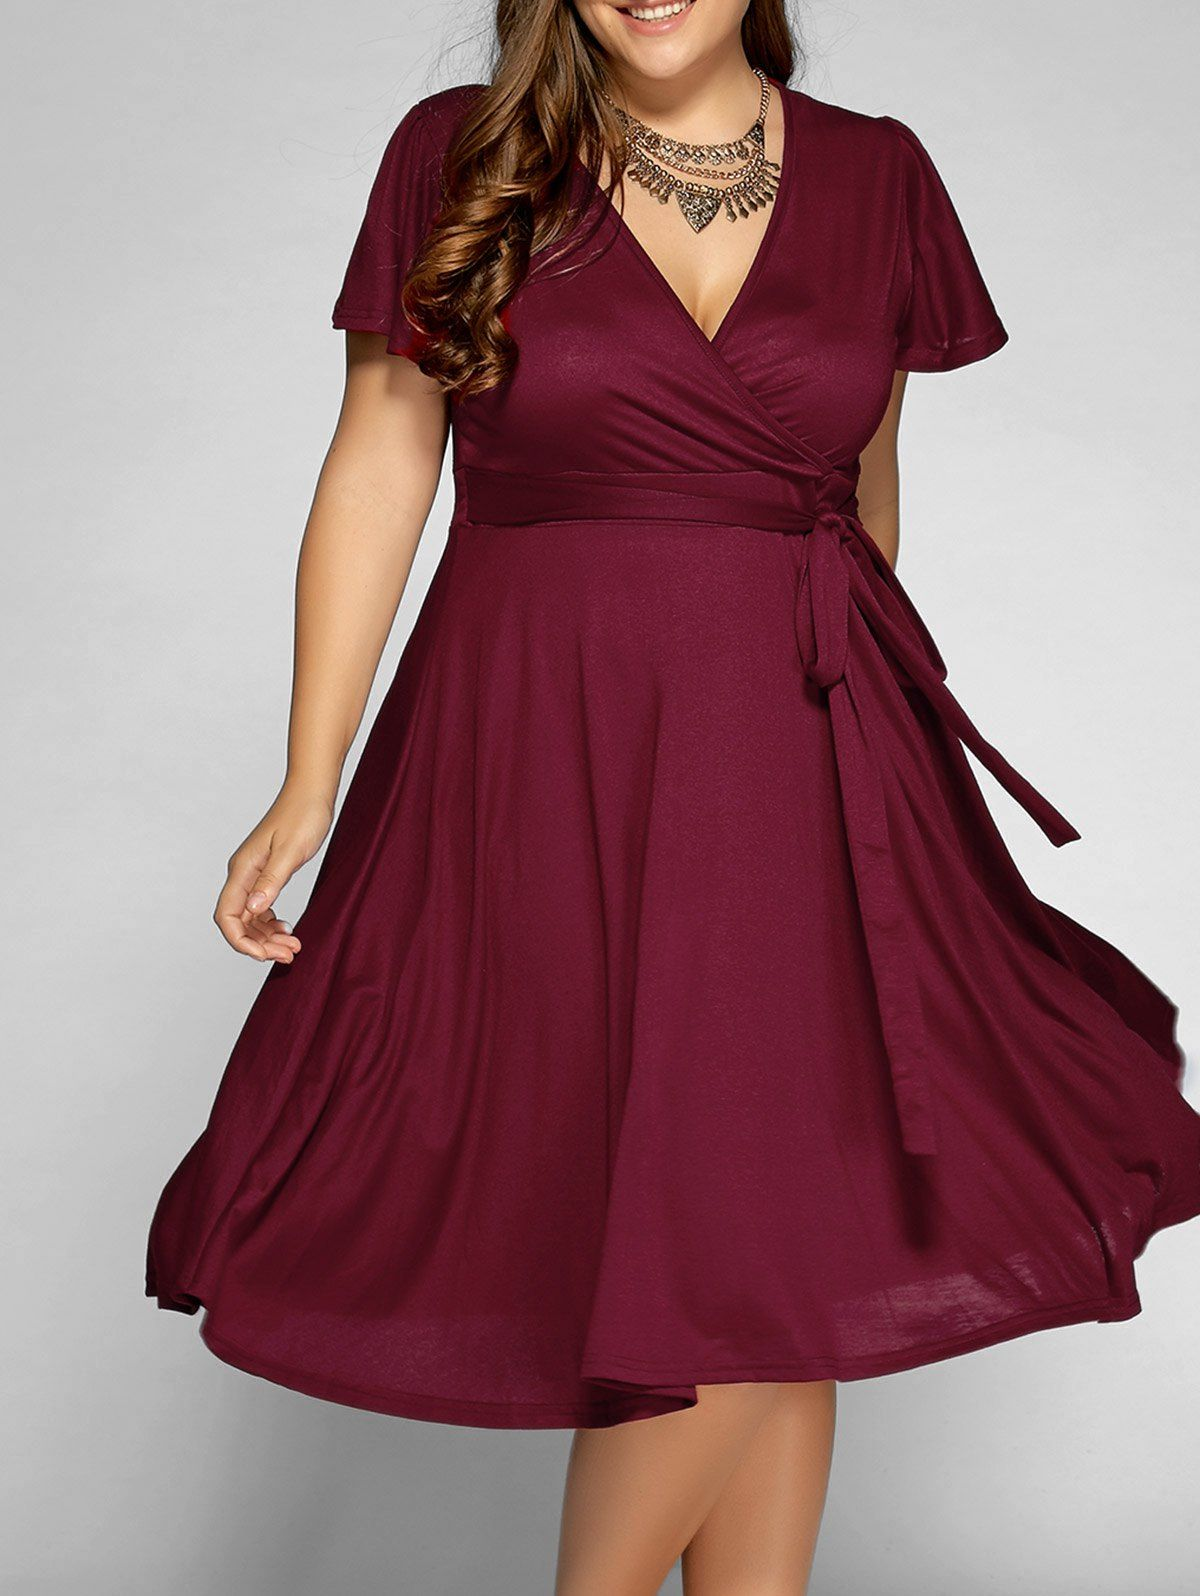 14.03 for Front Tie Swing Surplice Plus Size Dress in Wine Red ... c257995d1a8a